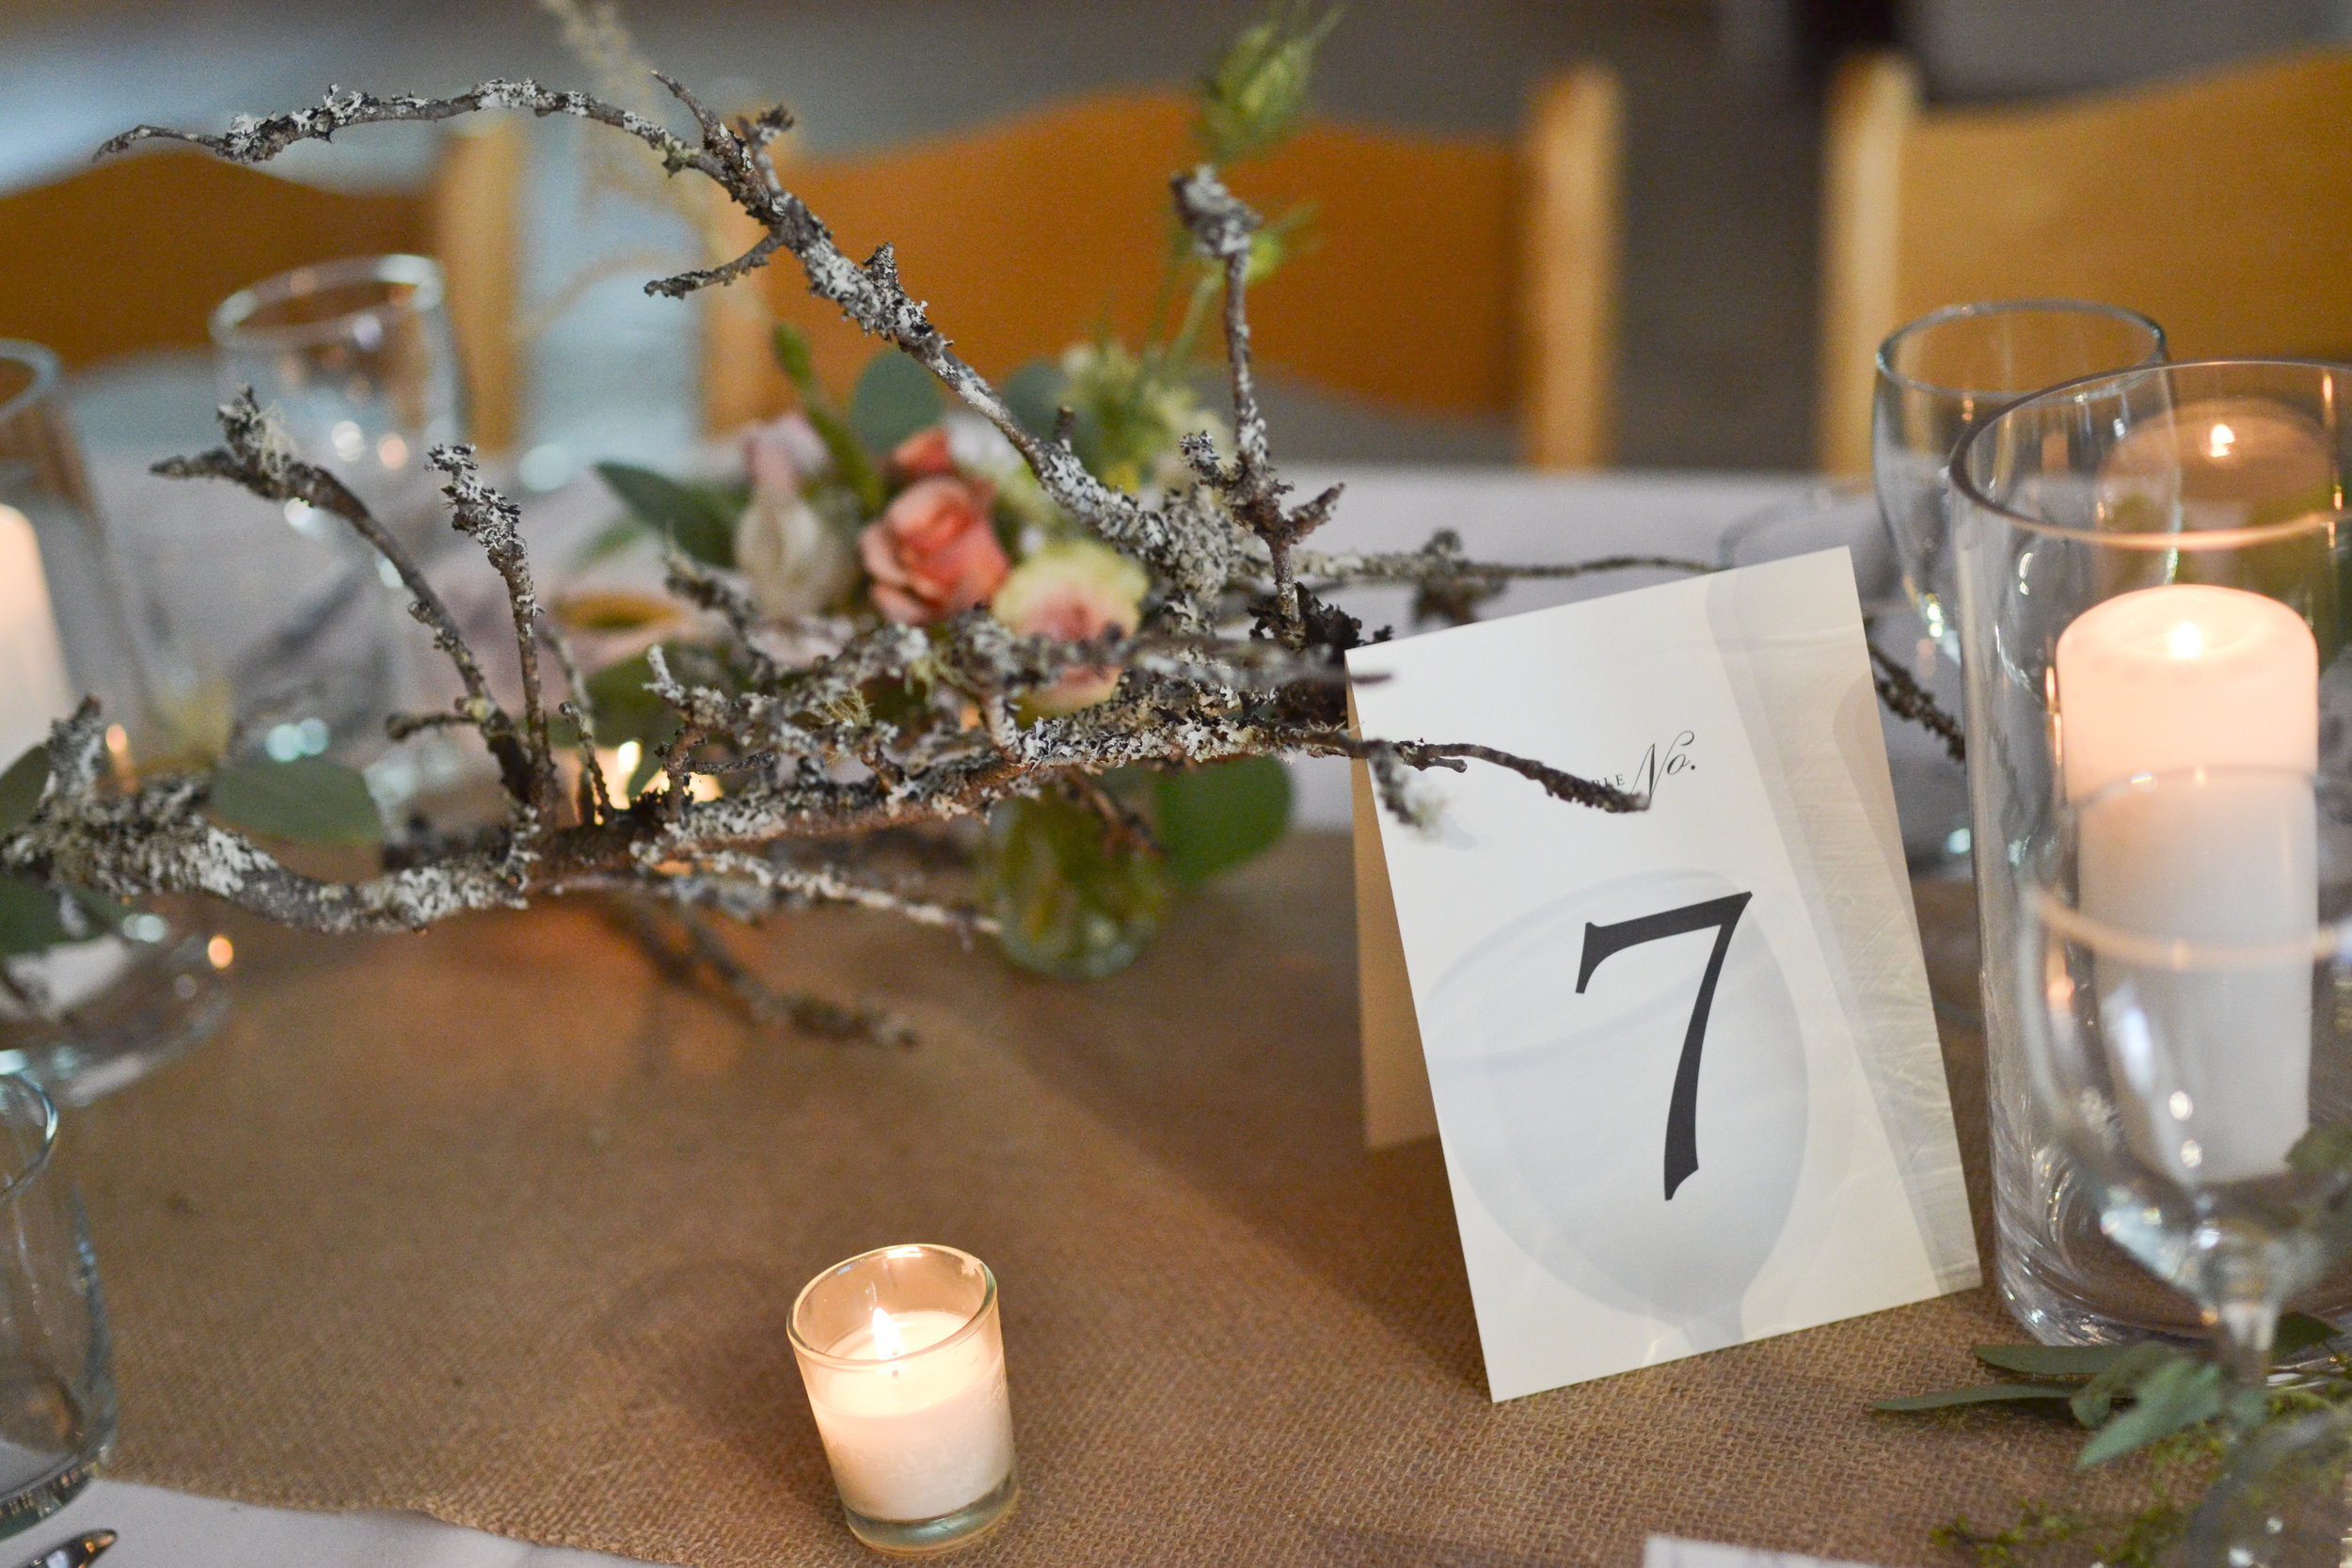 Lichen covered branches pair well with the table cards